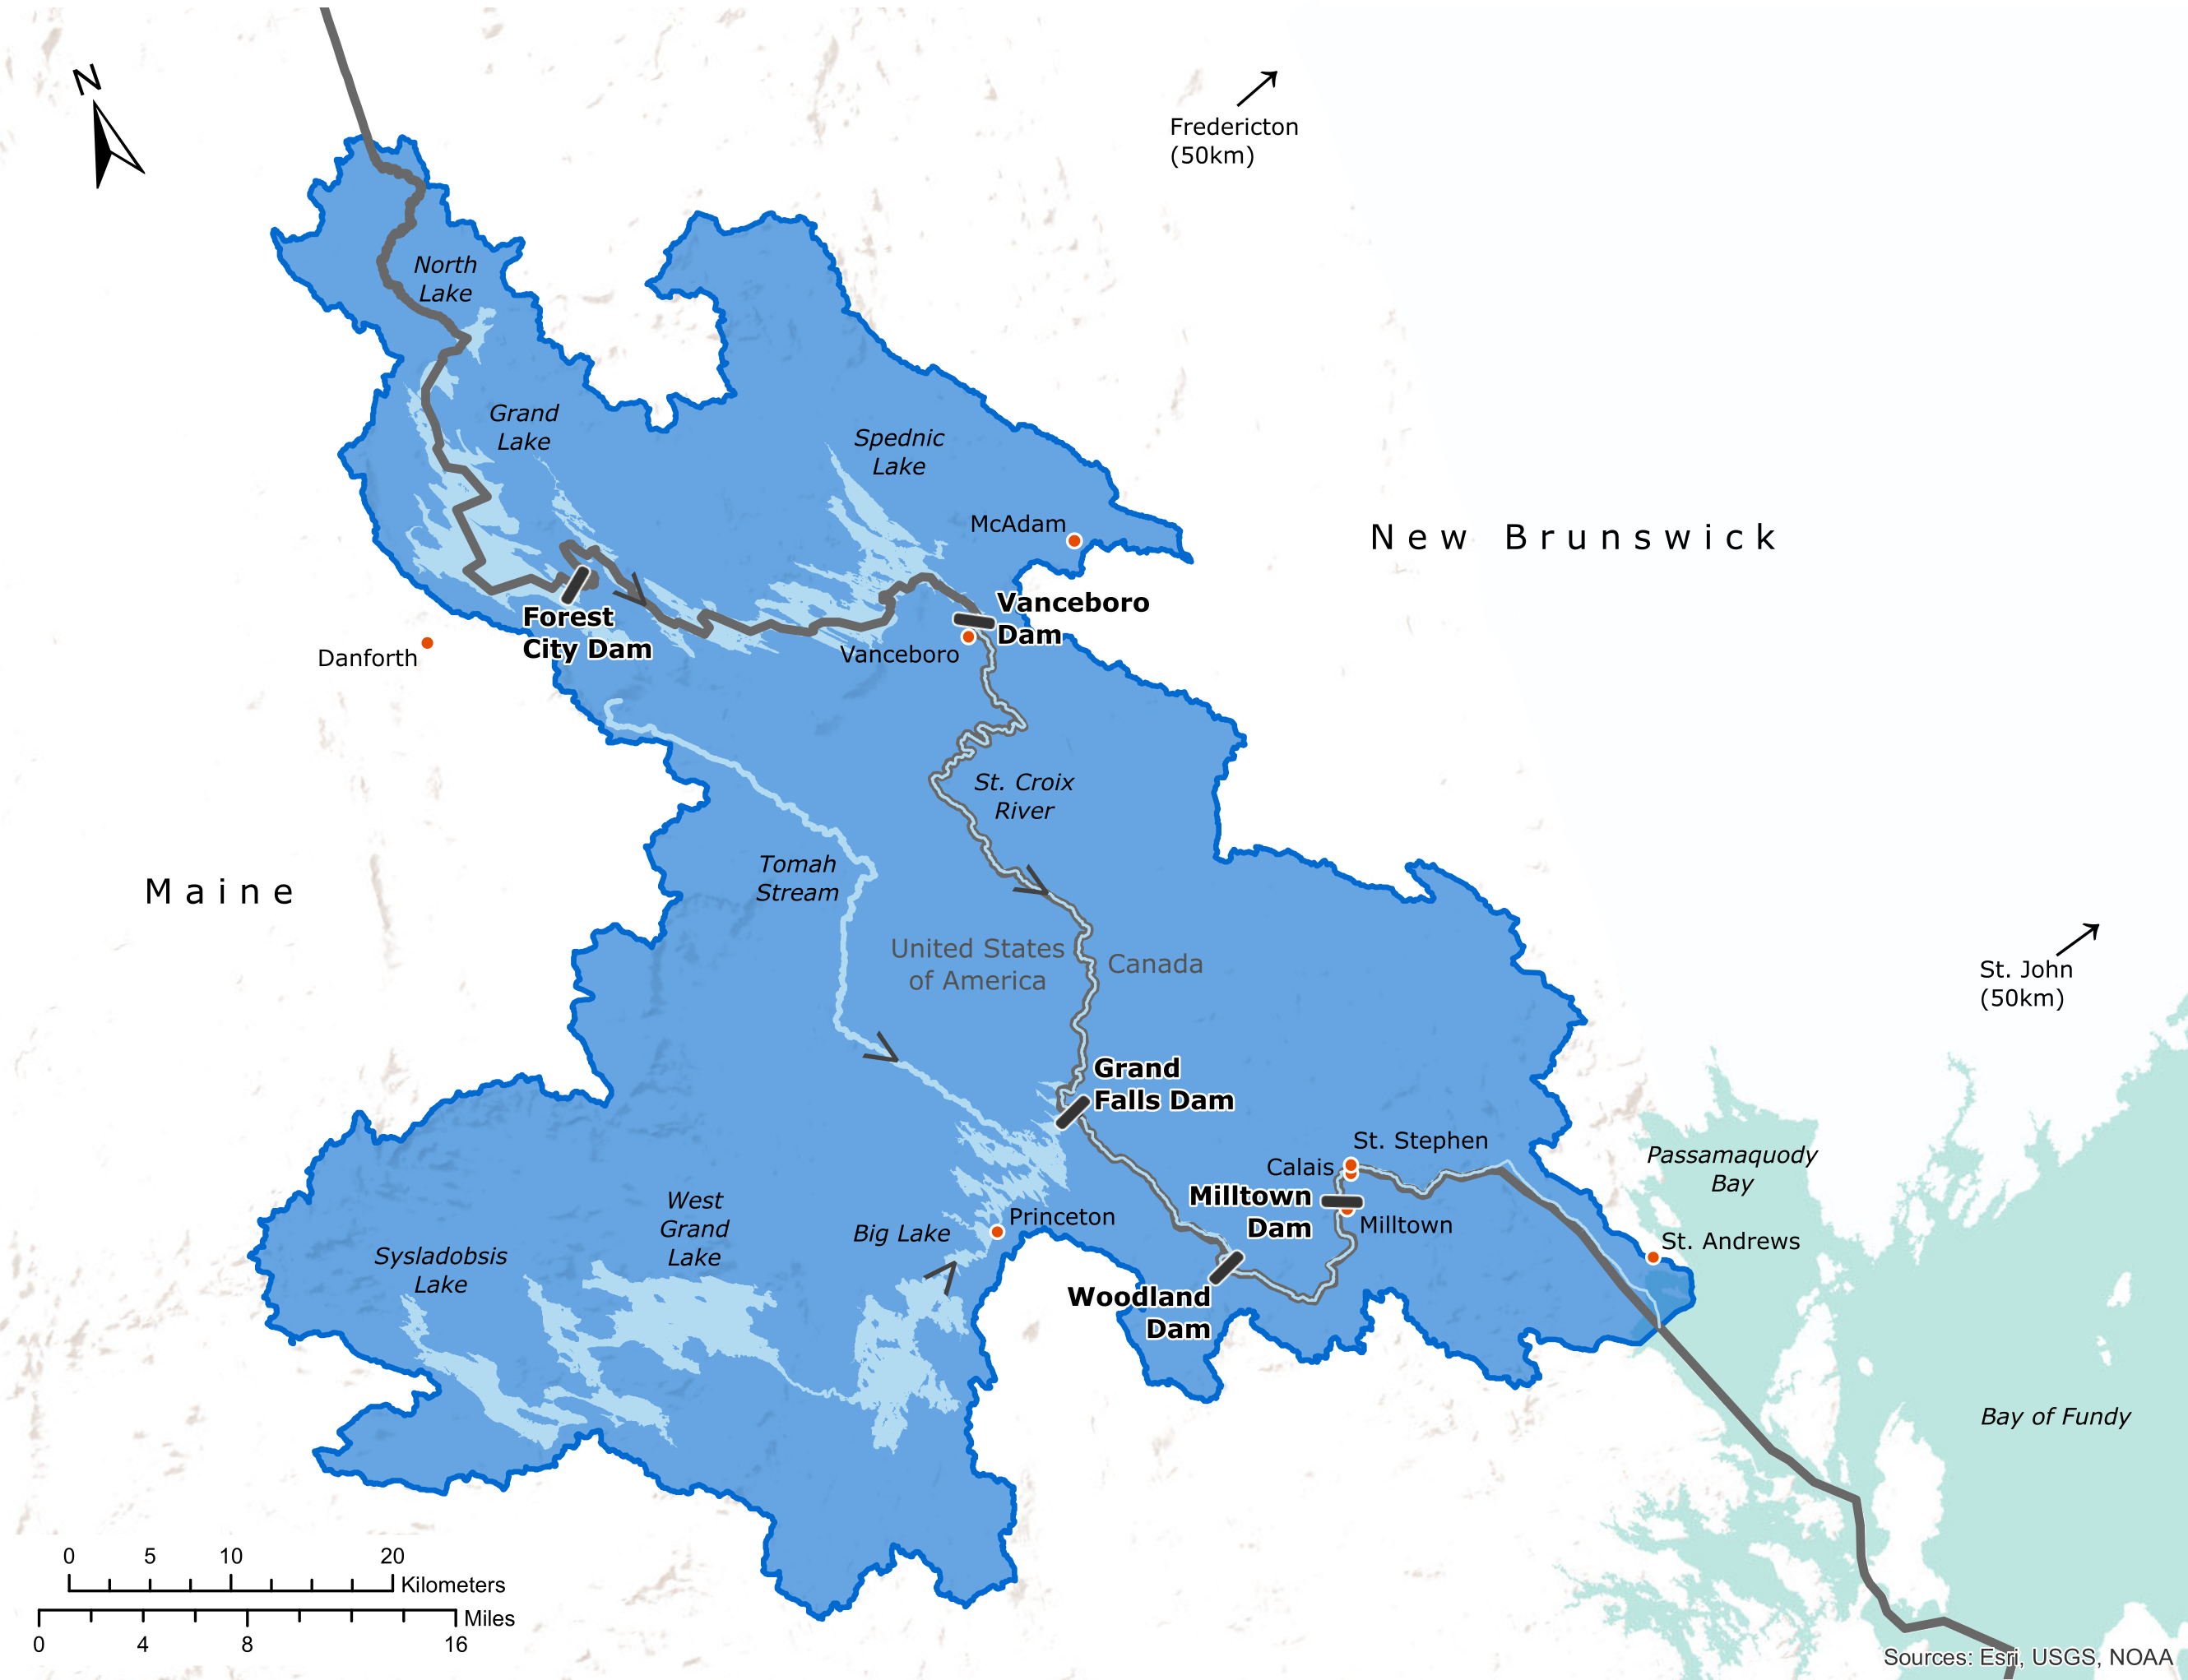 Map of the St. Croix River watershed